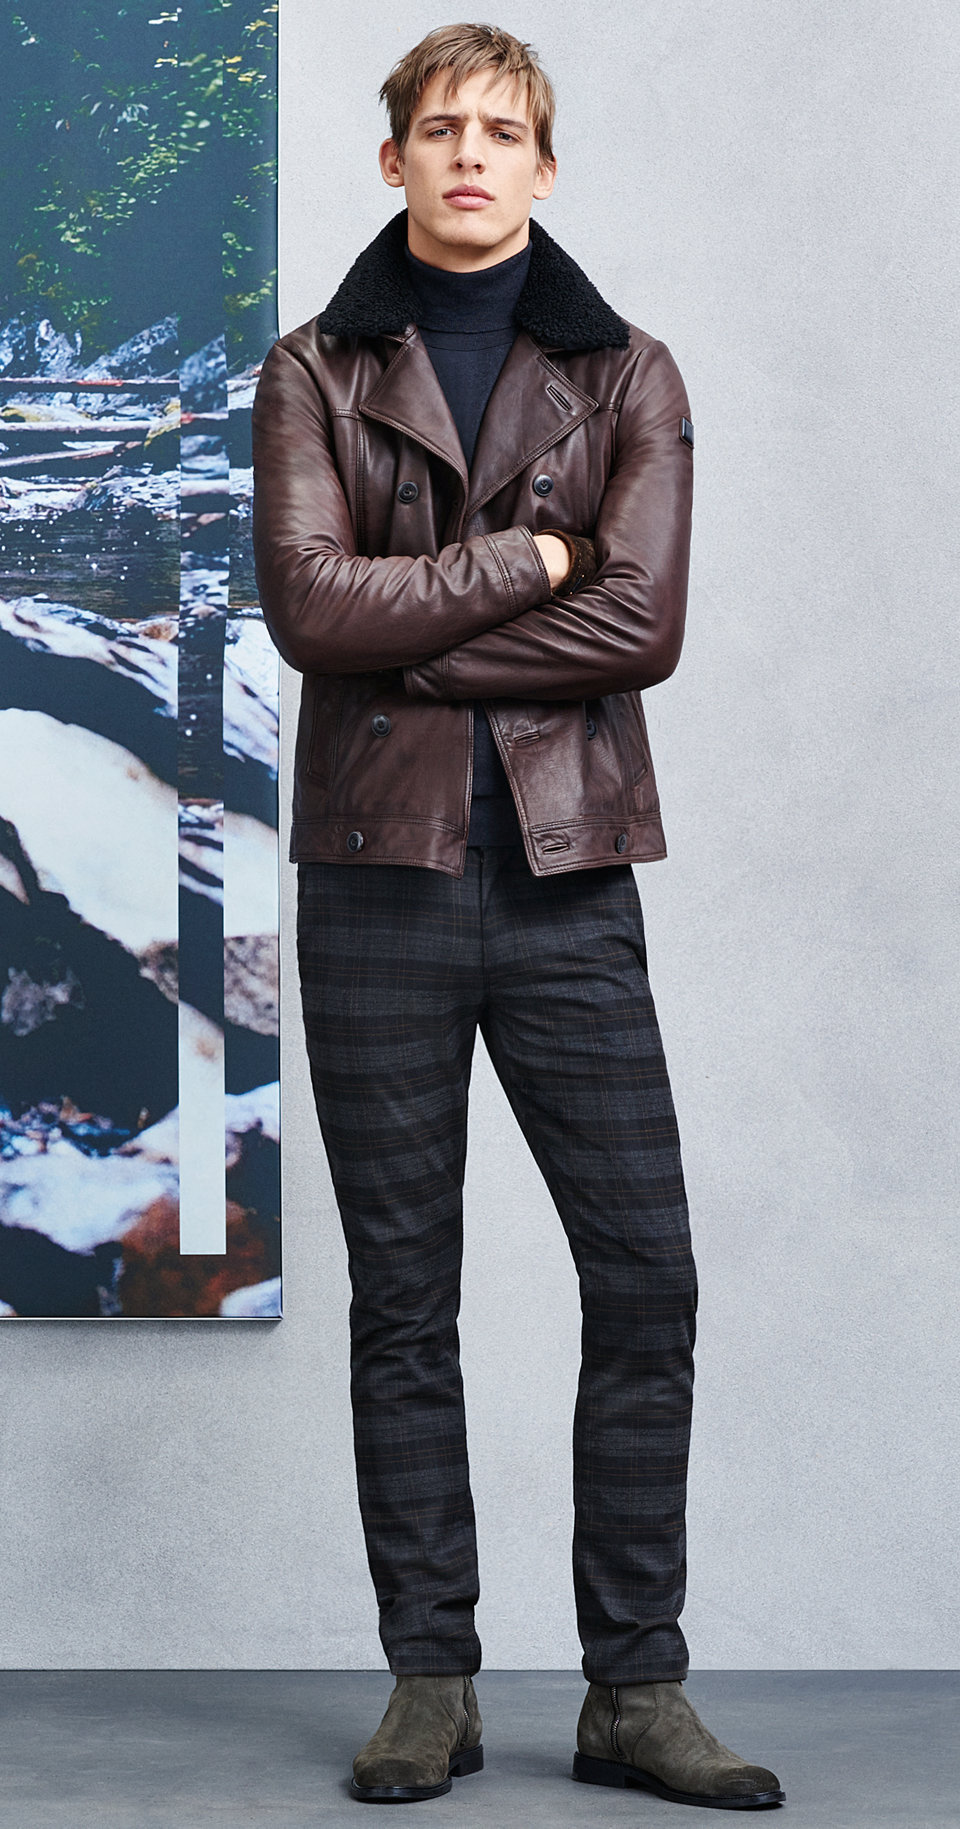 Darkbrown jacket, black trousers, scarf and green shoes by BOSS Orange